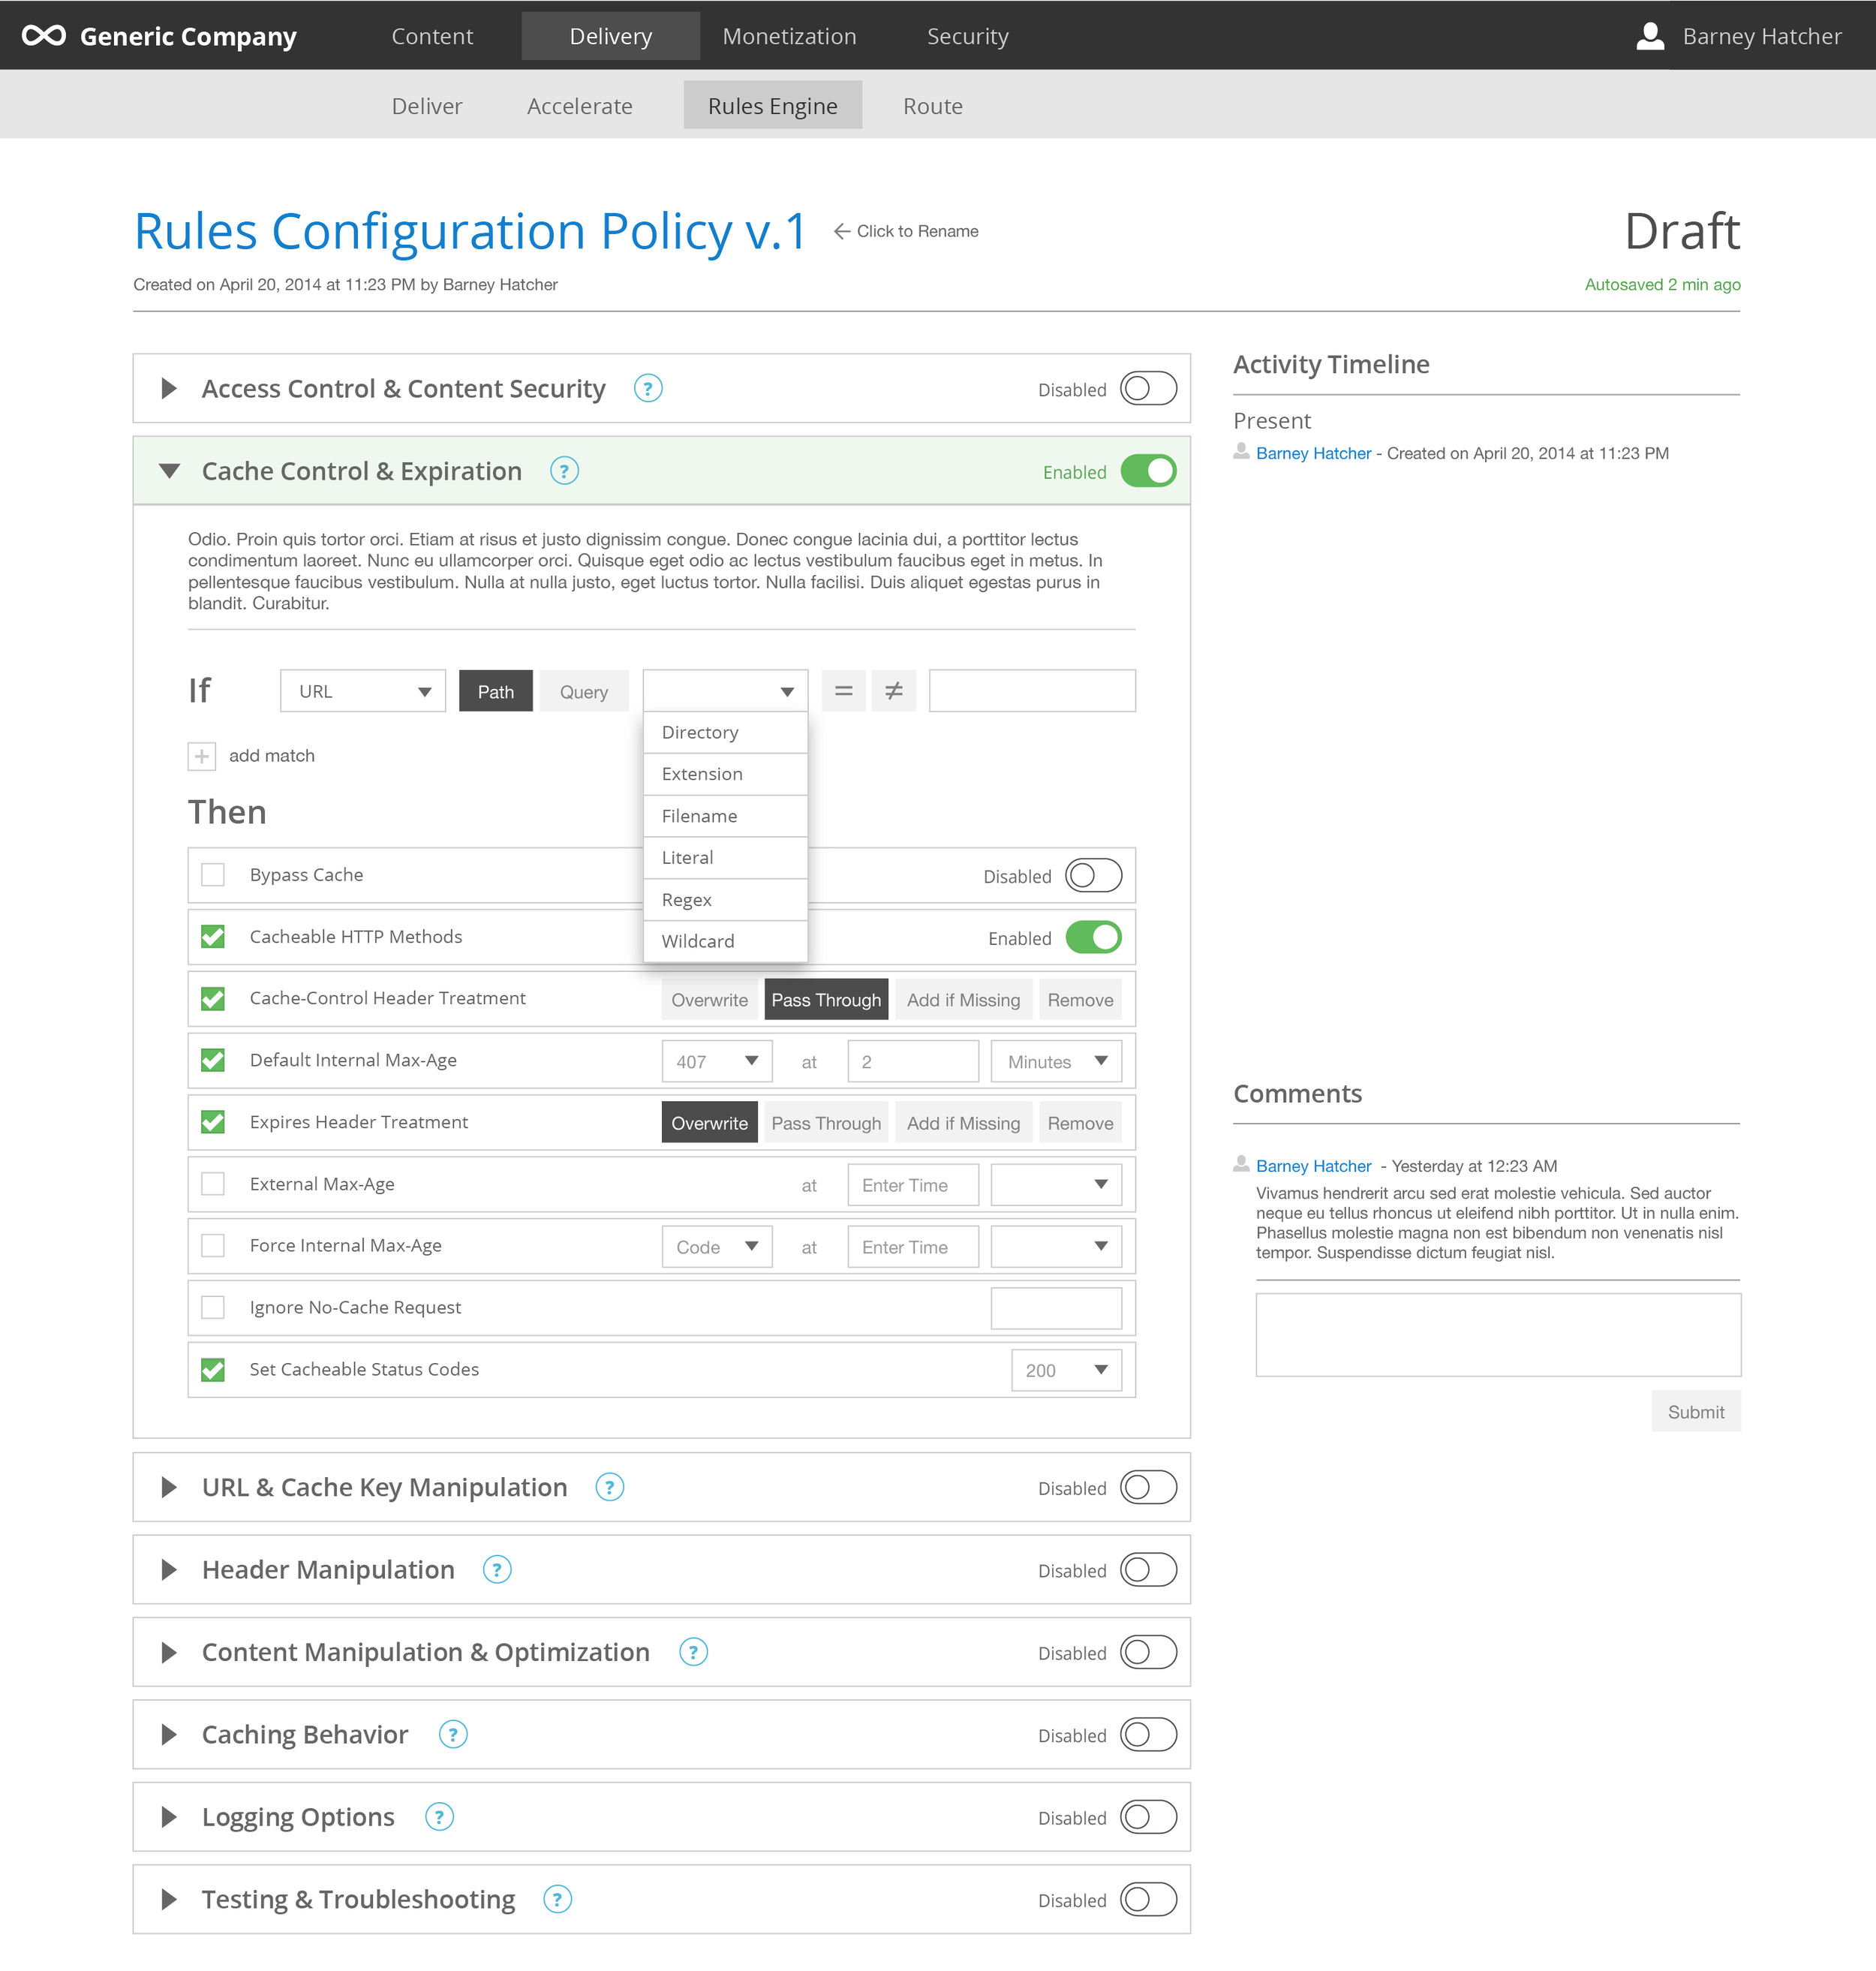 ux-rules-engine-v1_configuration policy-draft-1 enabled-features populated-match-url-secondary dropdown.png